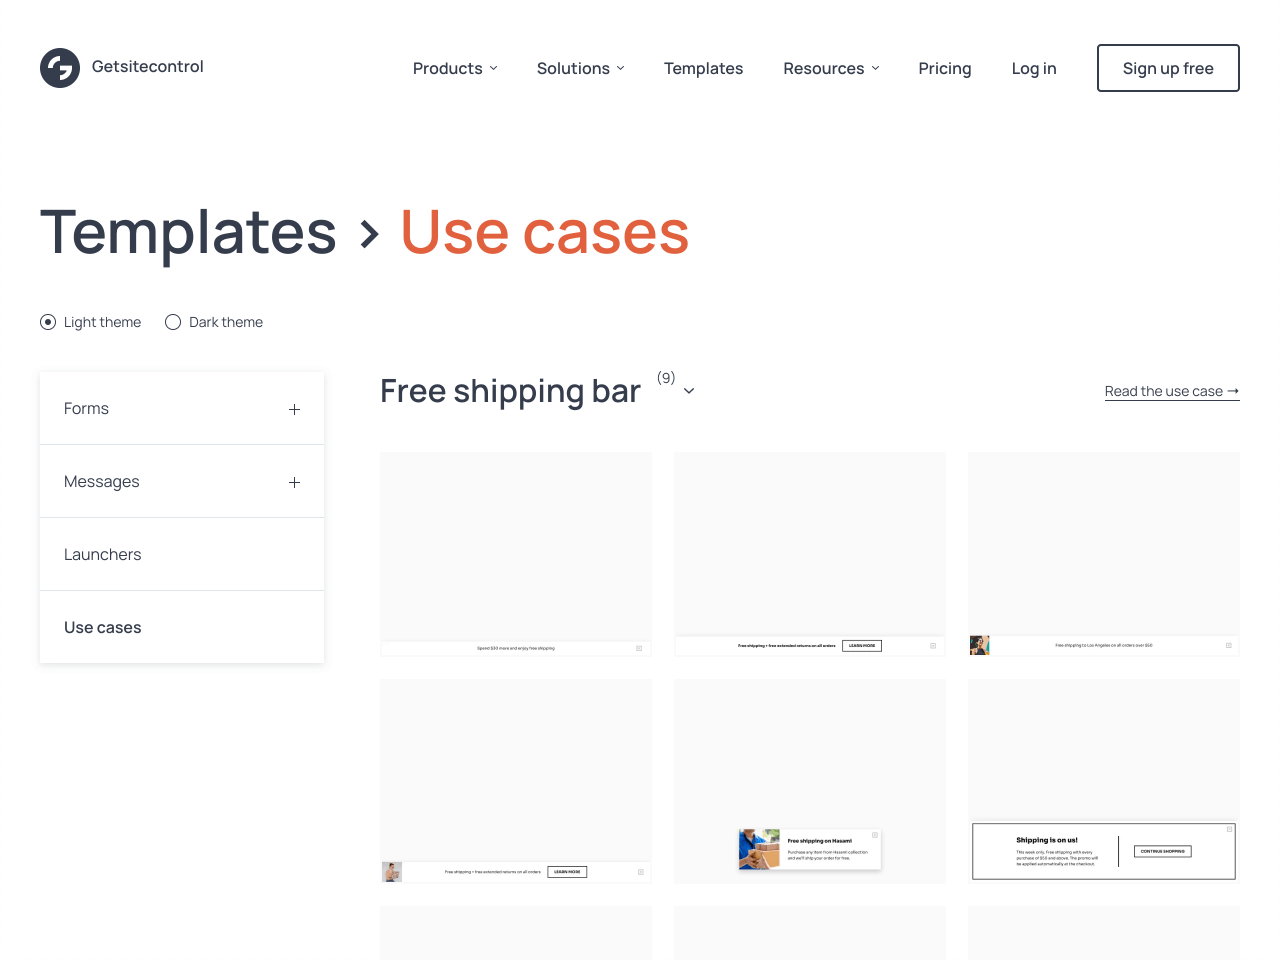 Free shipping bar gallery for Shopify powered by Getsitecontrol